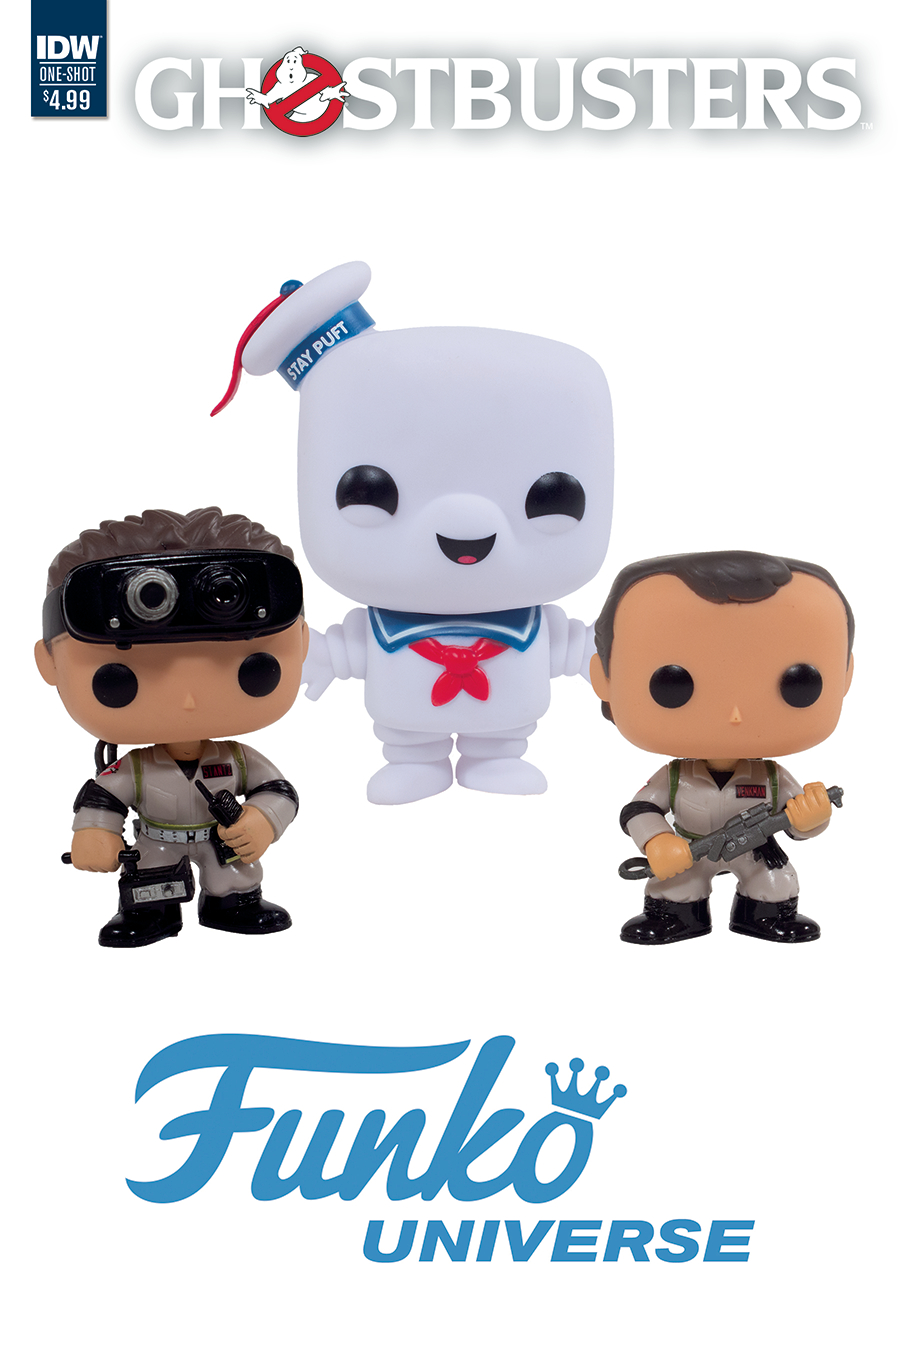 Ghostbusters: Funko Universe Toy Variant